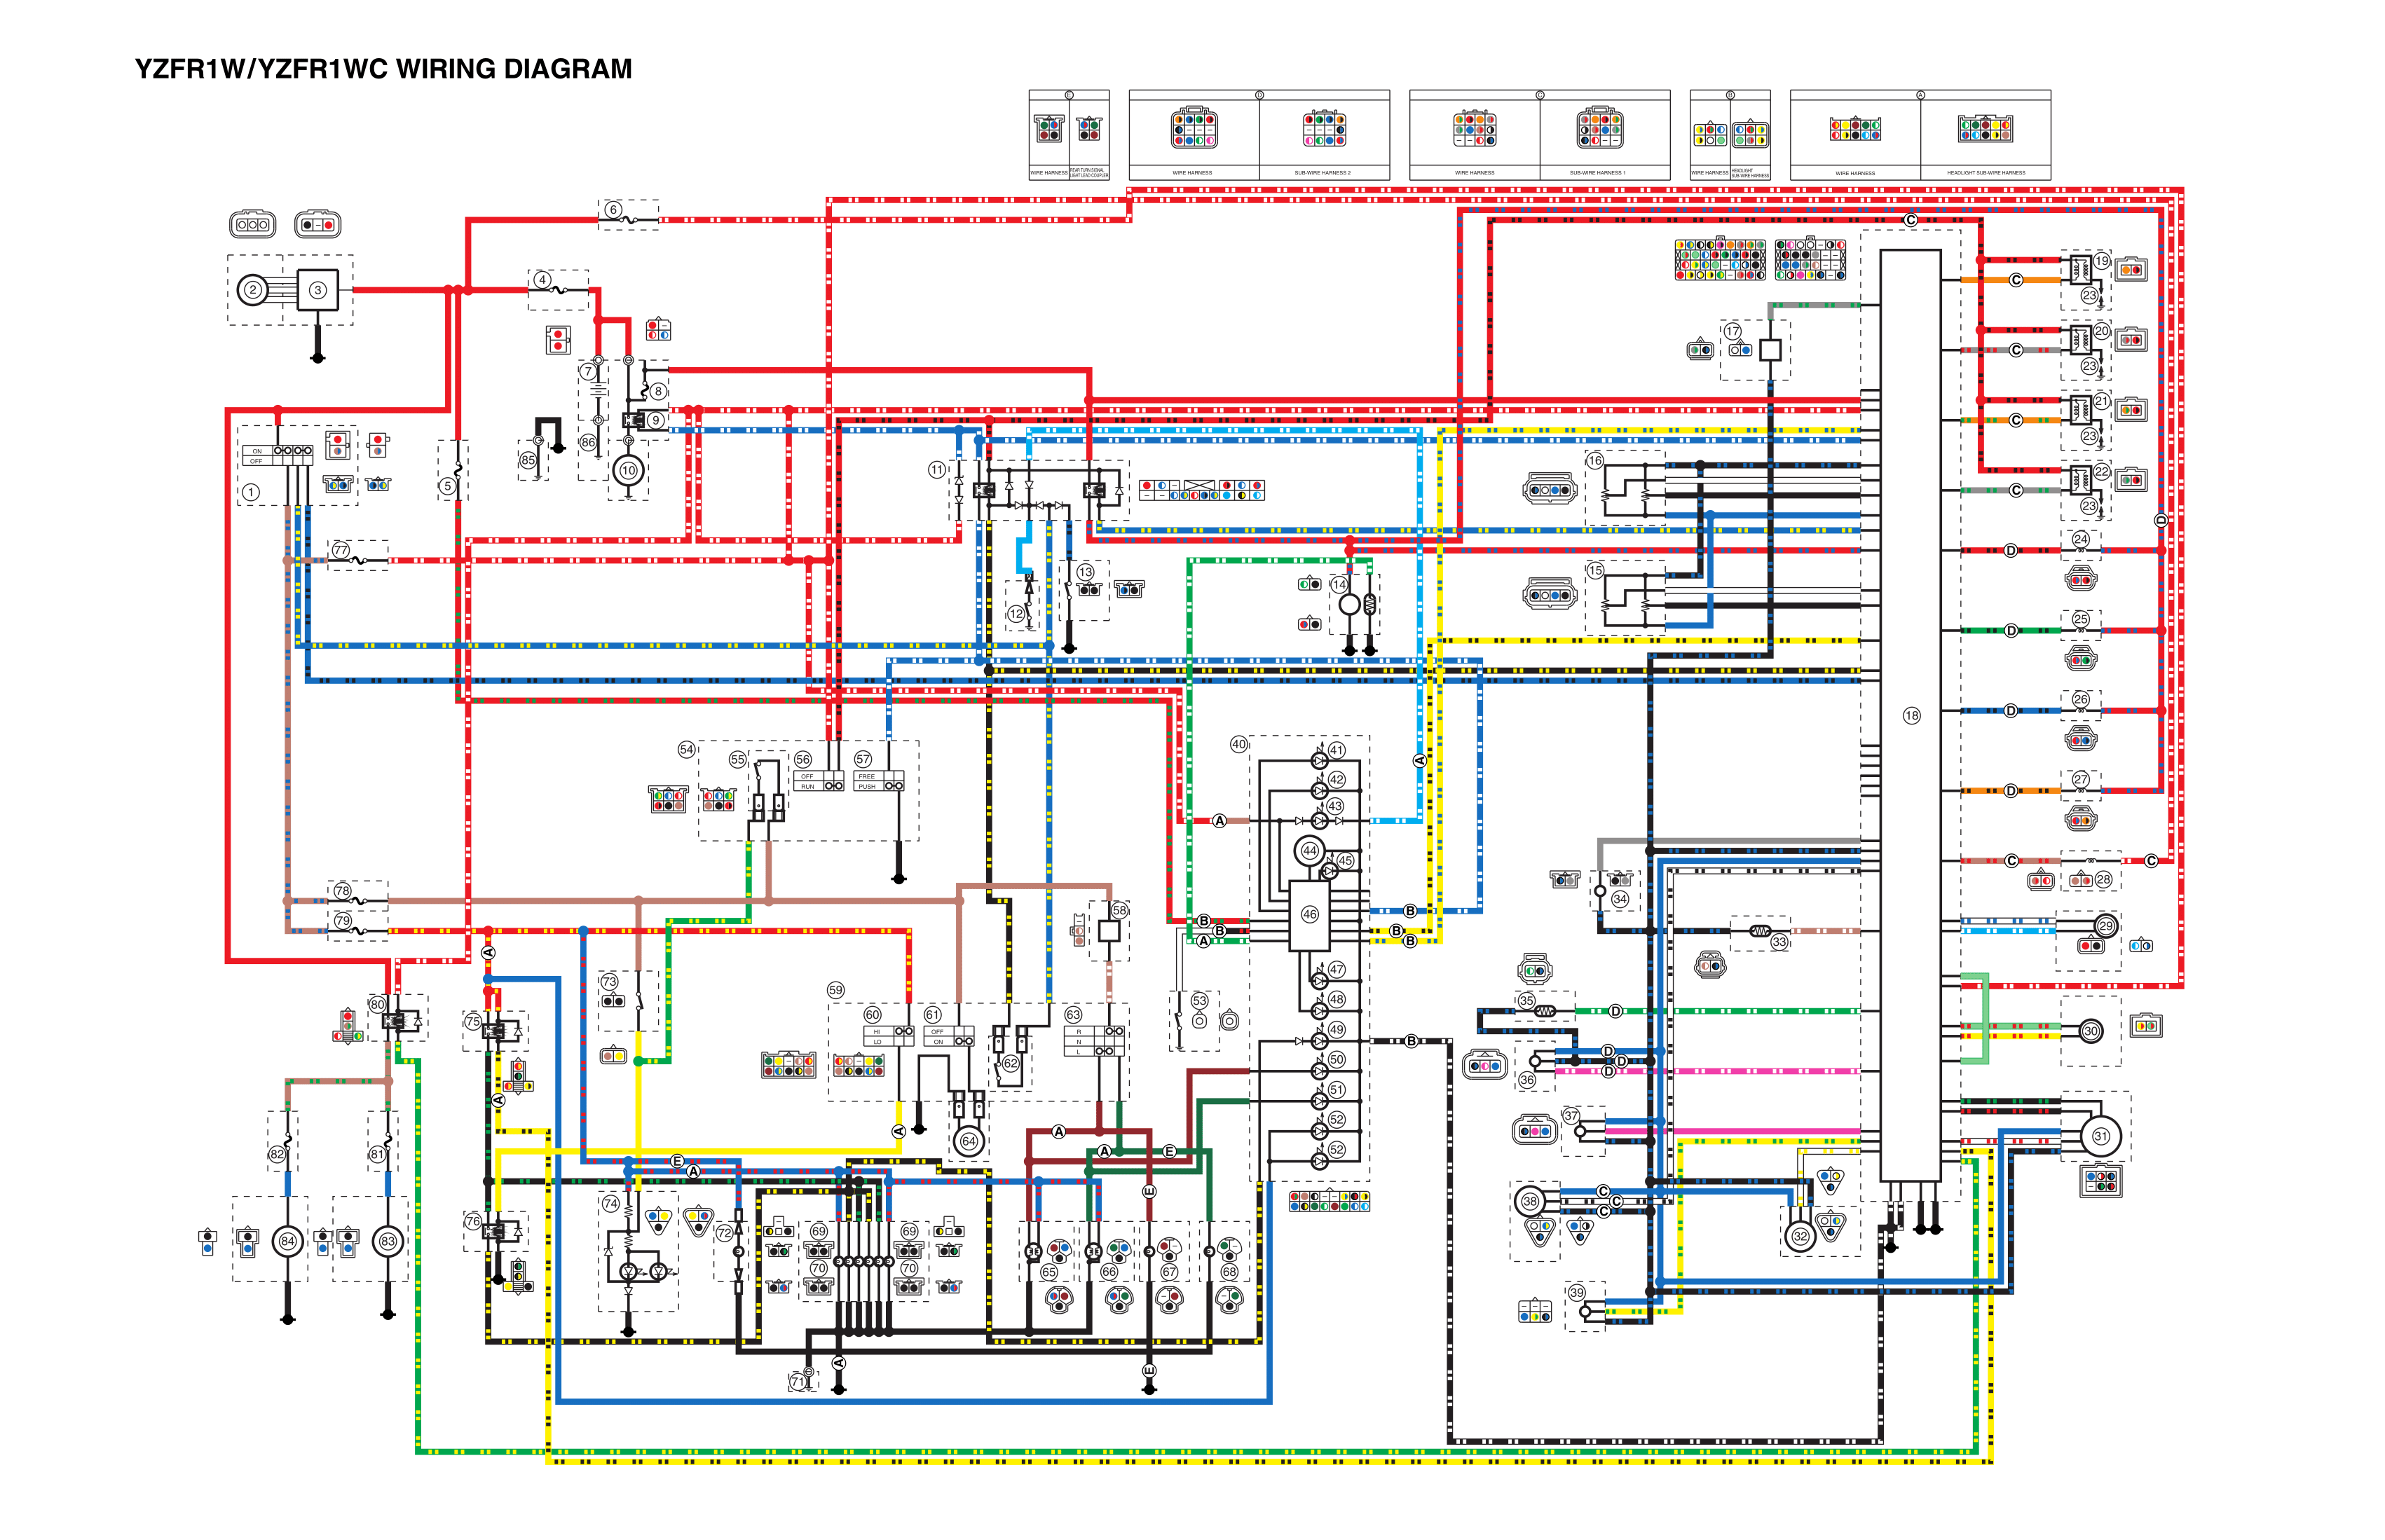 2008 yamaha r1 wiring diagram wiring diagrams